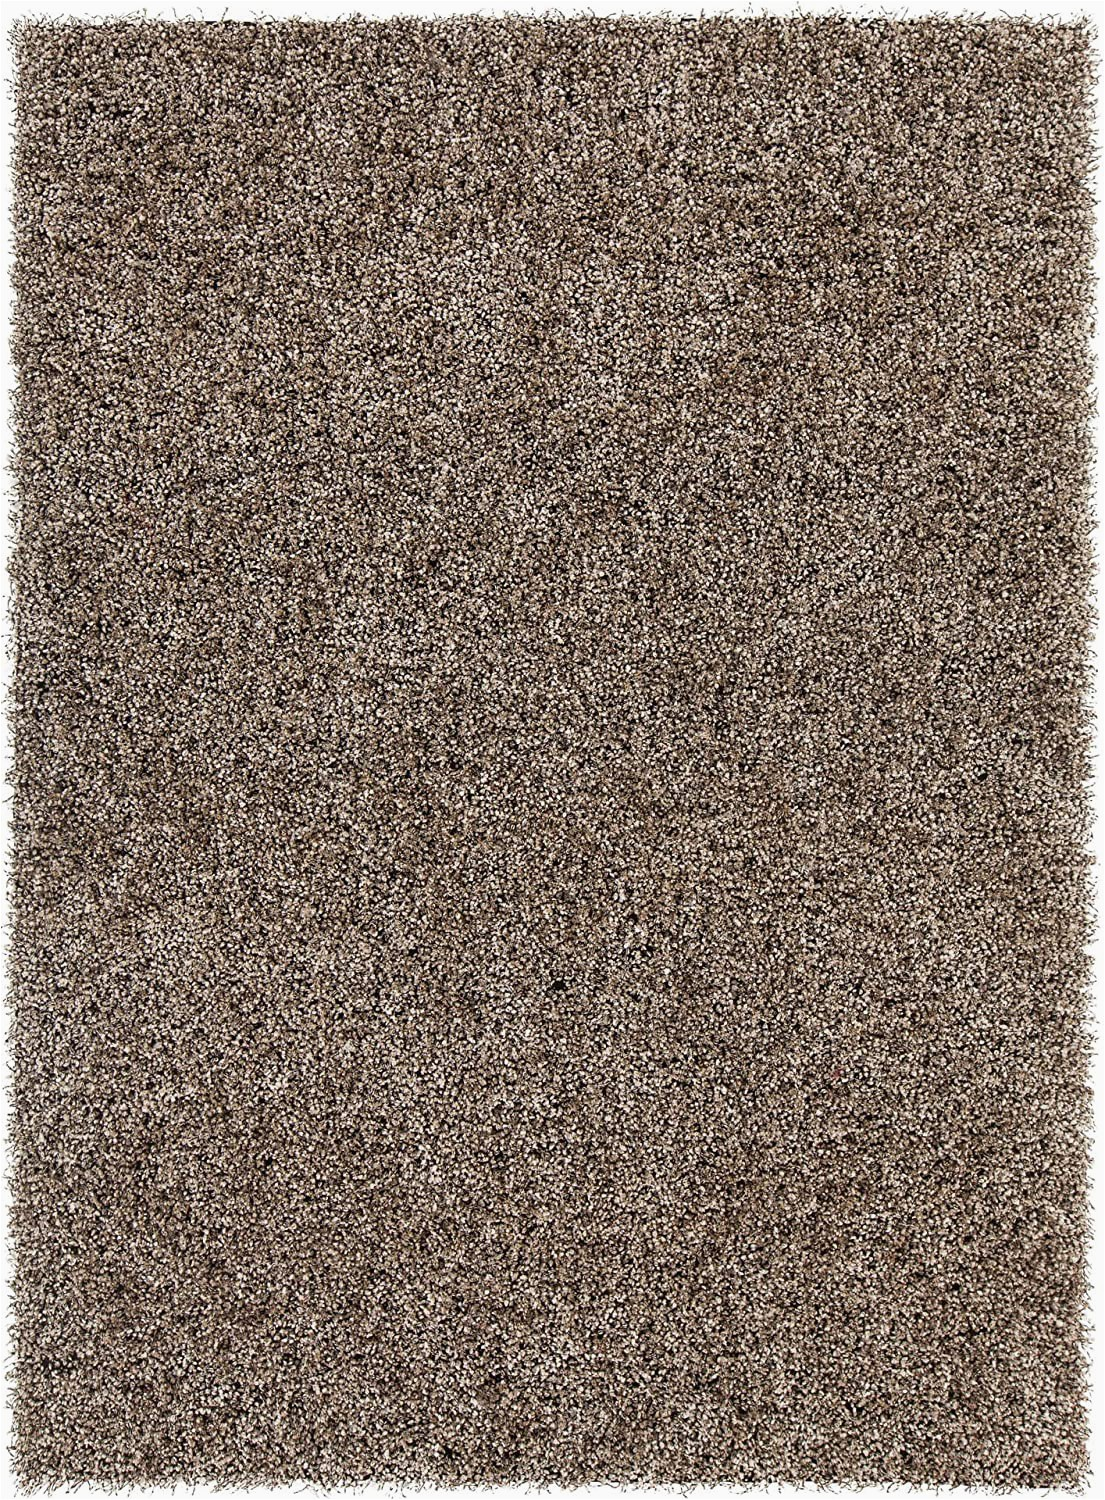 60 X 80 area Rug Amazon Chandra Rugs Blossom area Rug 60 Inch by 84